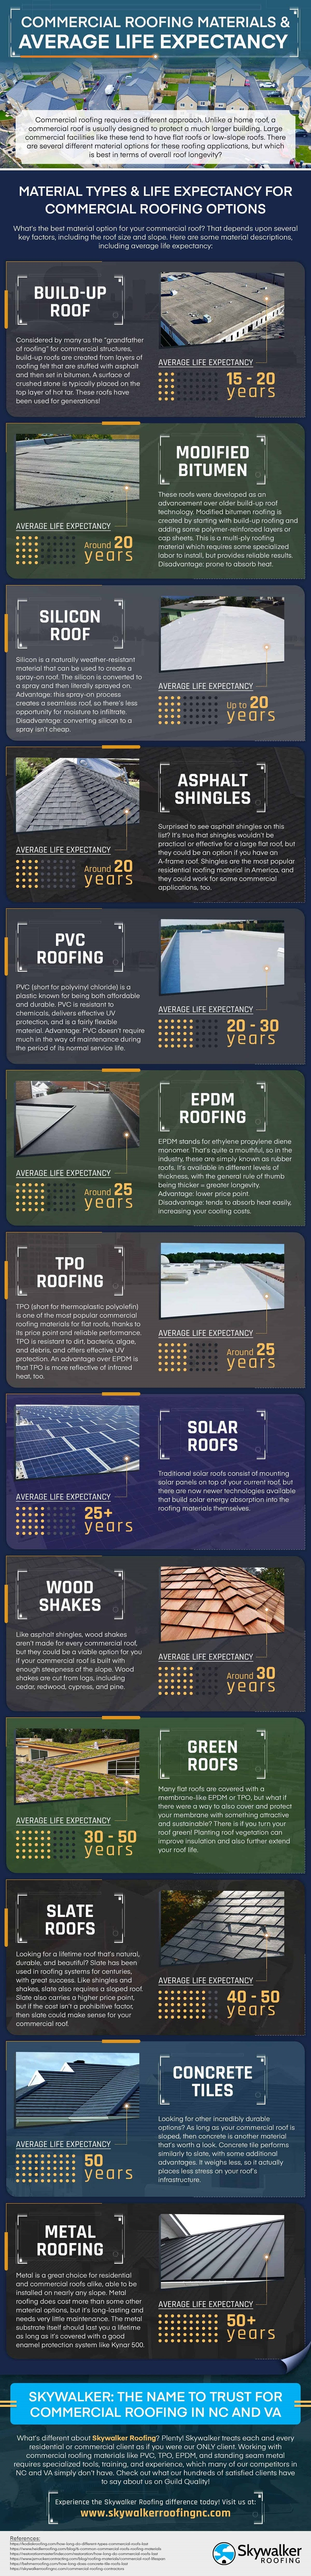 commercial-roofing-materials-average-life-expectancy-infographic